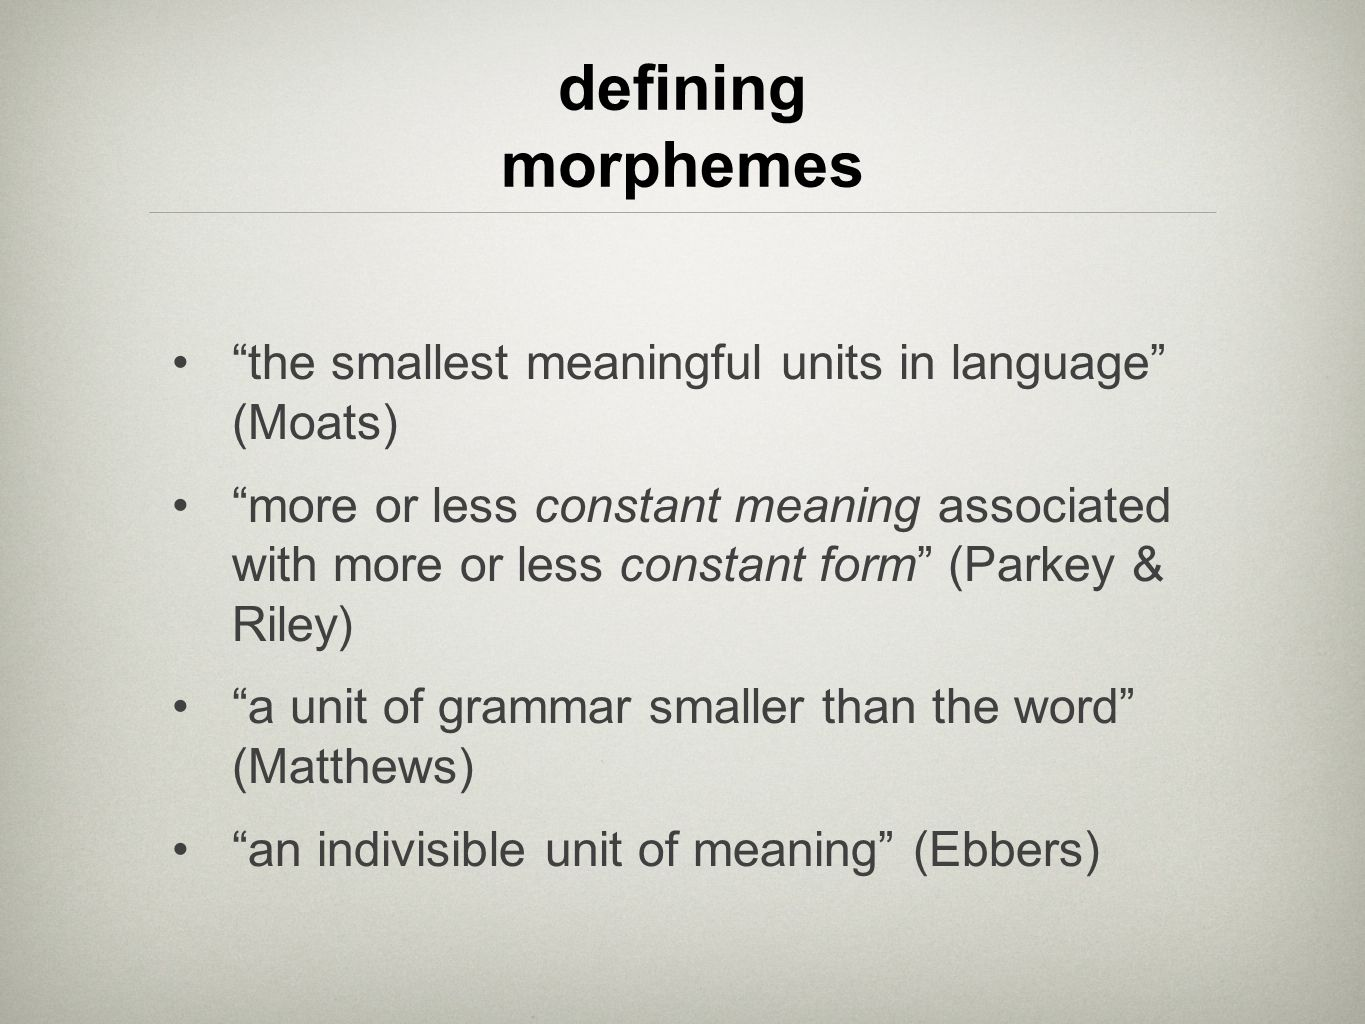 defining morphemes morph form, shape eme minimal distinctive unit eme graphphonelexmorph not able to be further reduced without losing or changing its meaning not divisible into smaller morphemes